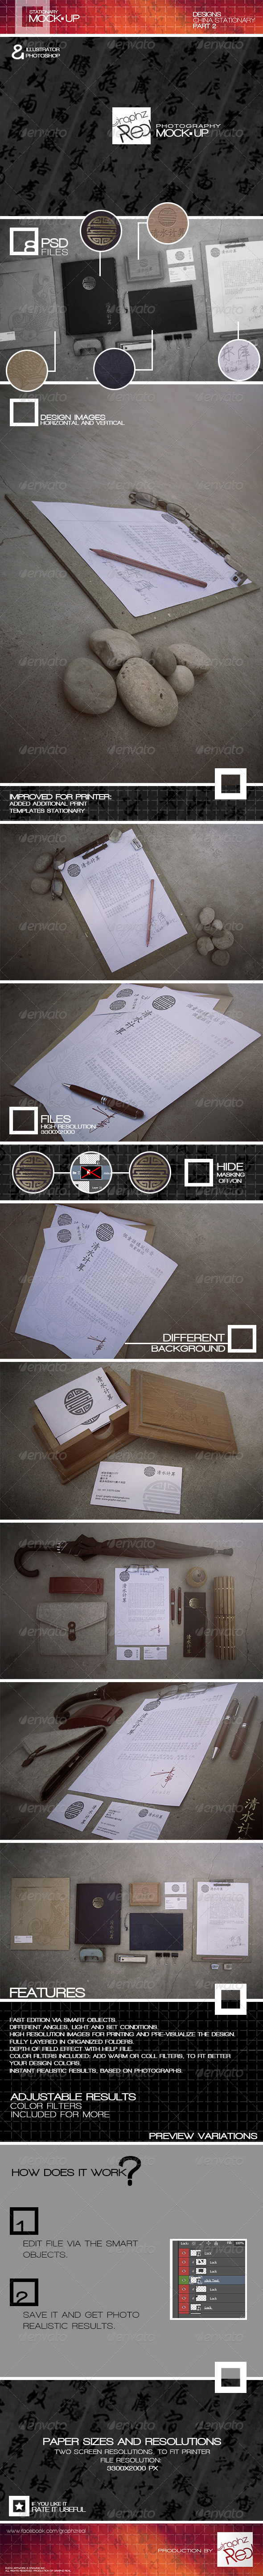 GraphicRiver Mock-up 003 7090485